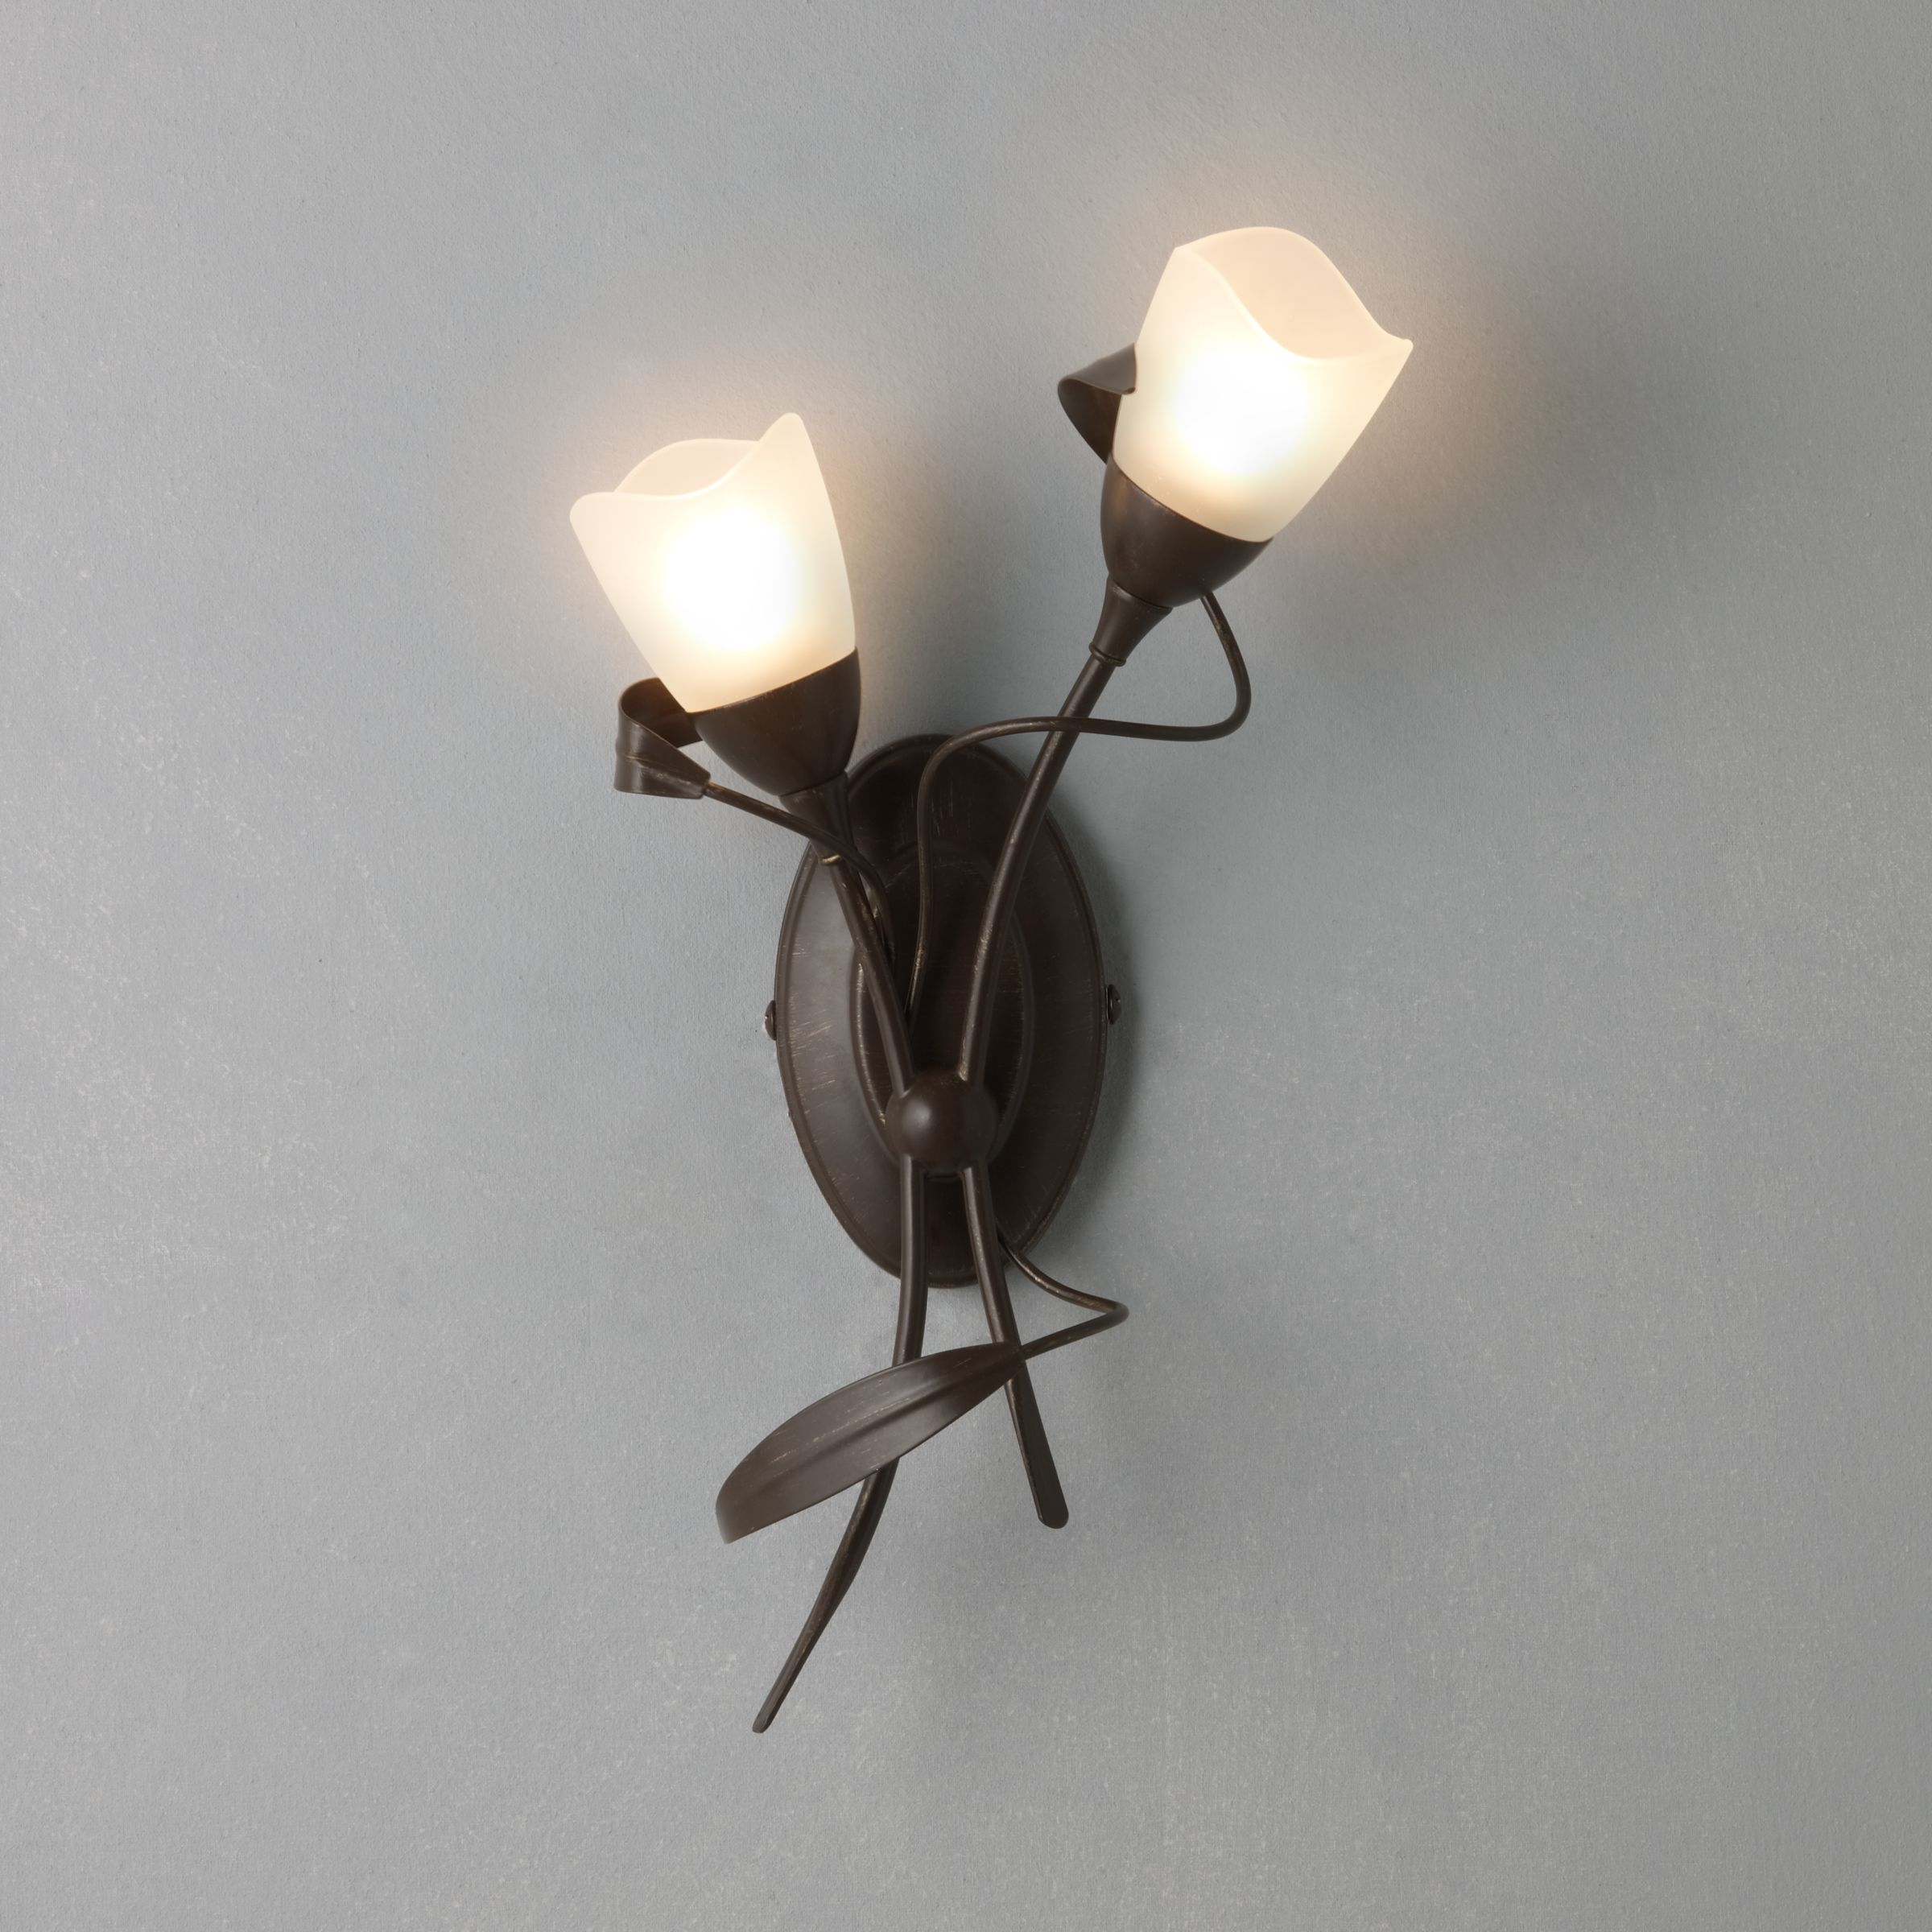 John Lewis Wall Lights Glass : Buy John Lewis Yasmin Wall Light, 2 Arm John Lewis